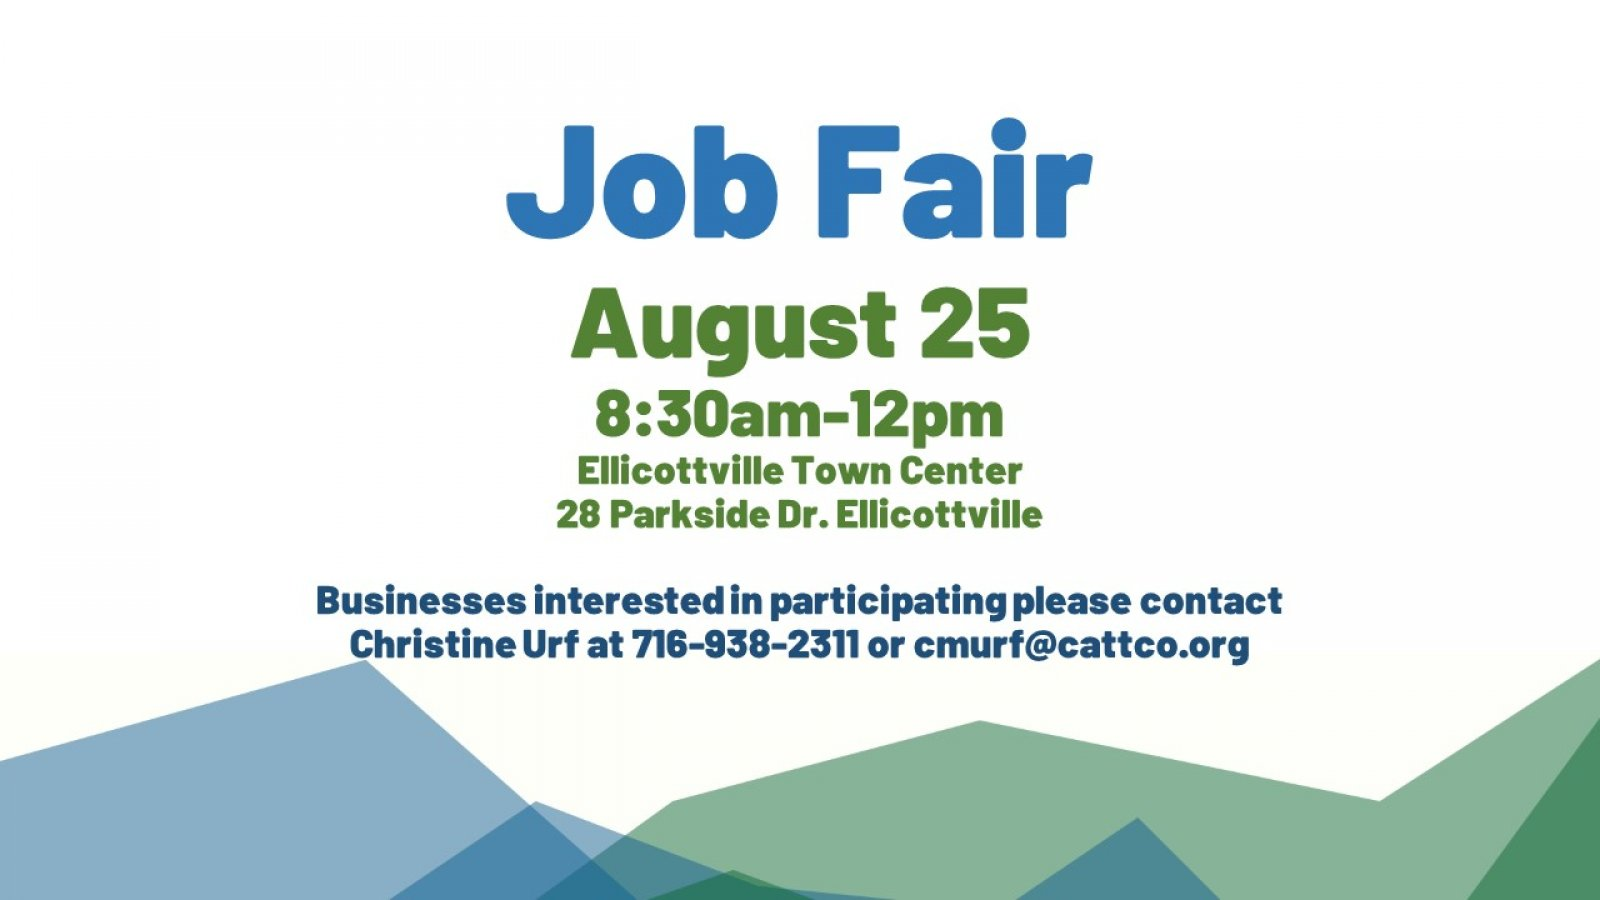 Job FairAugust 258:30am-12pmEllicottville Town Center28 Parkside Dr. EllicottvilleBusinesses interested in participating please contact Christine Urf at 716-938-2311 or cmurf@cattco.org